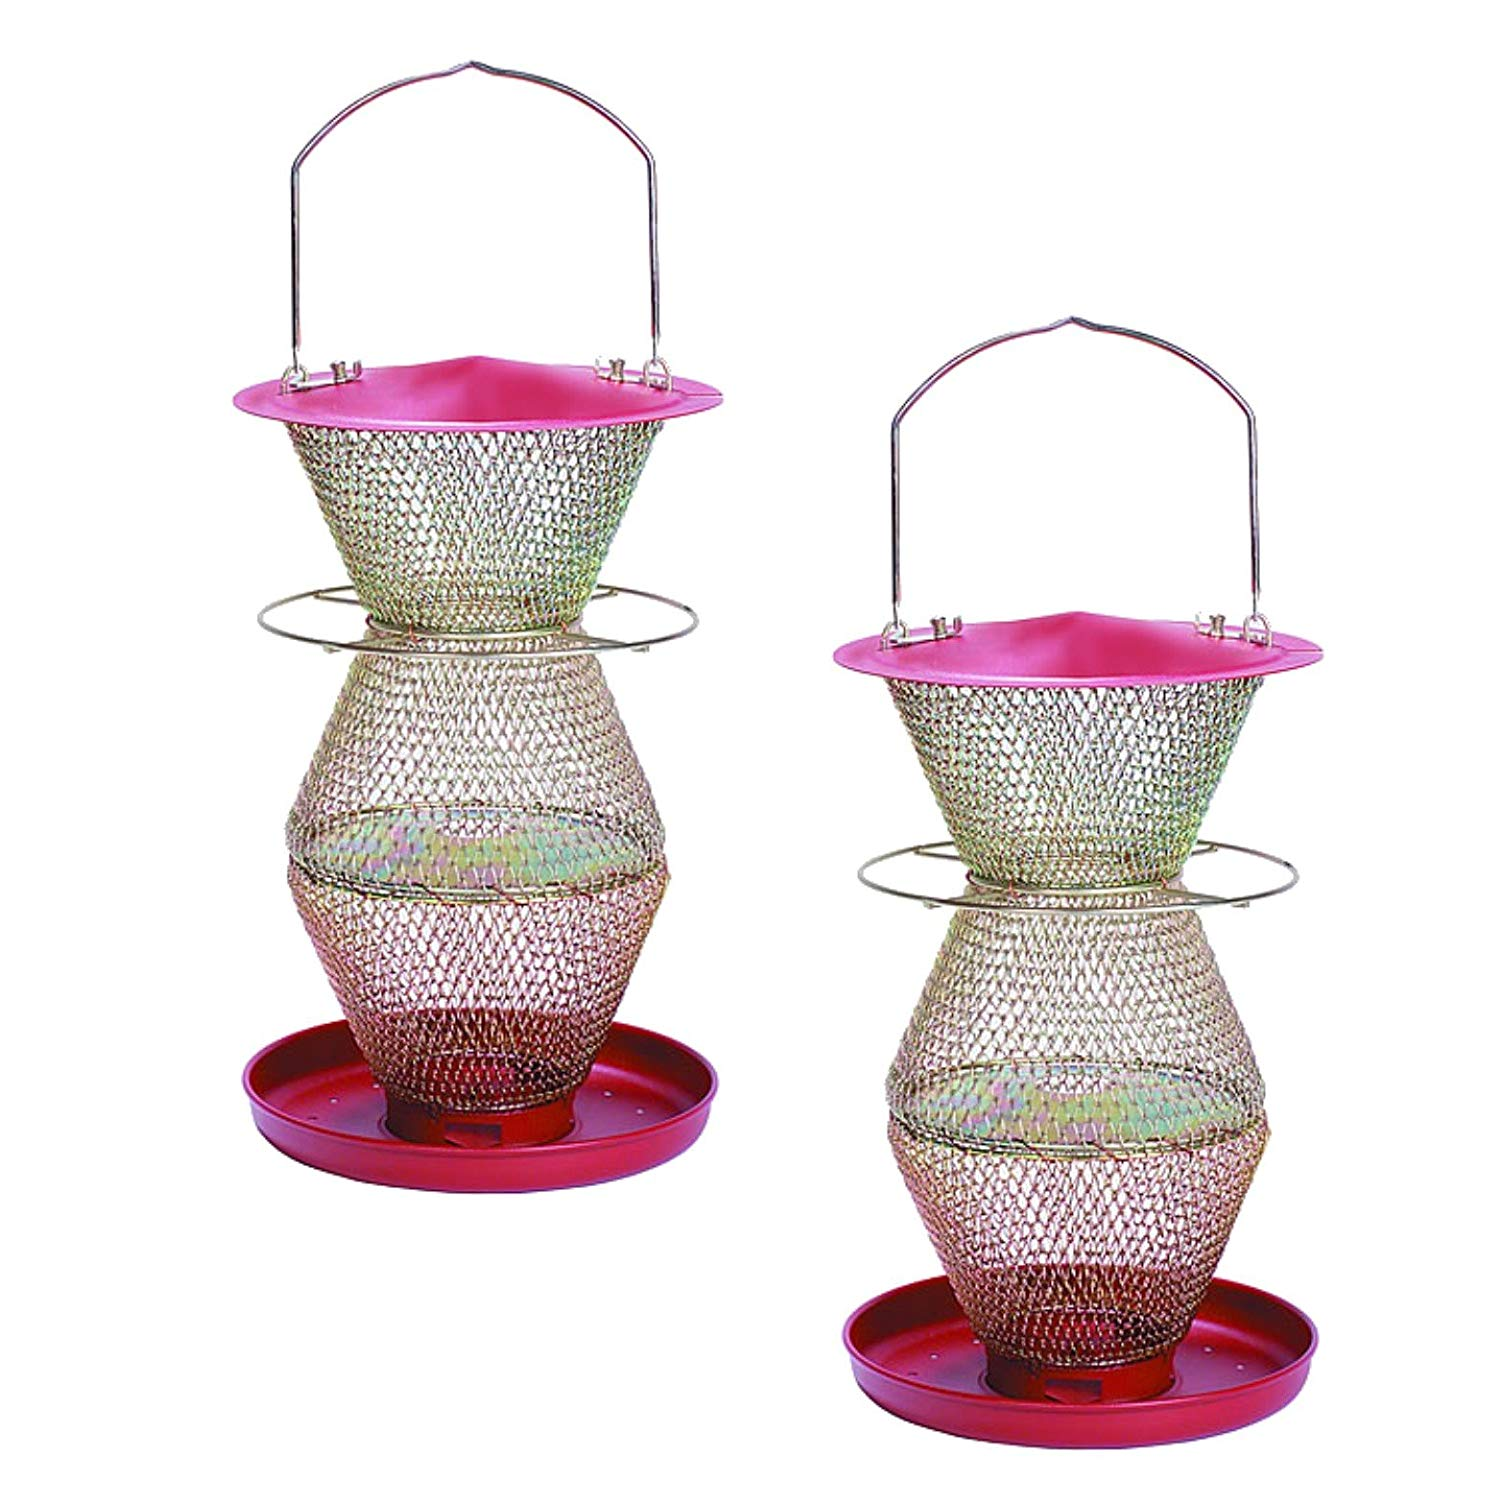 No/No RB300334 Red and Brass Standard 3 Tier Seed Feeder